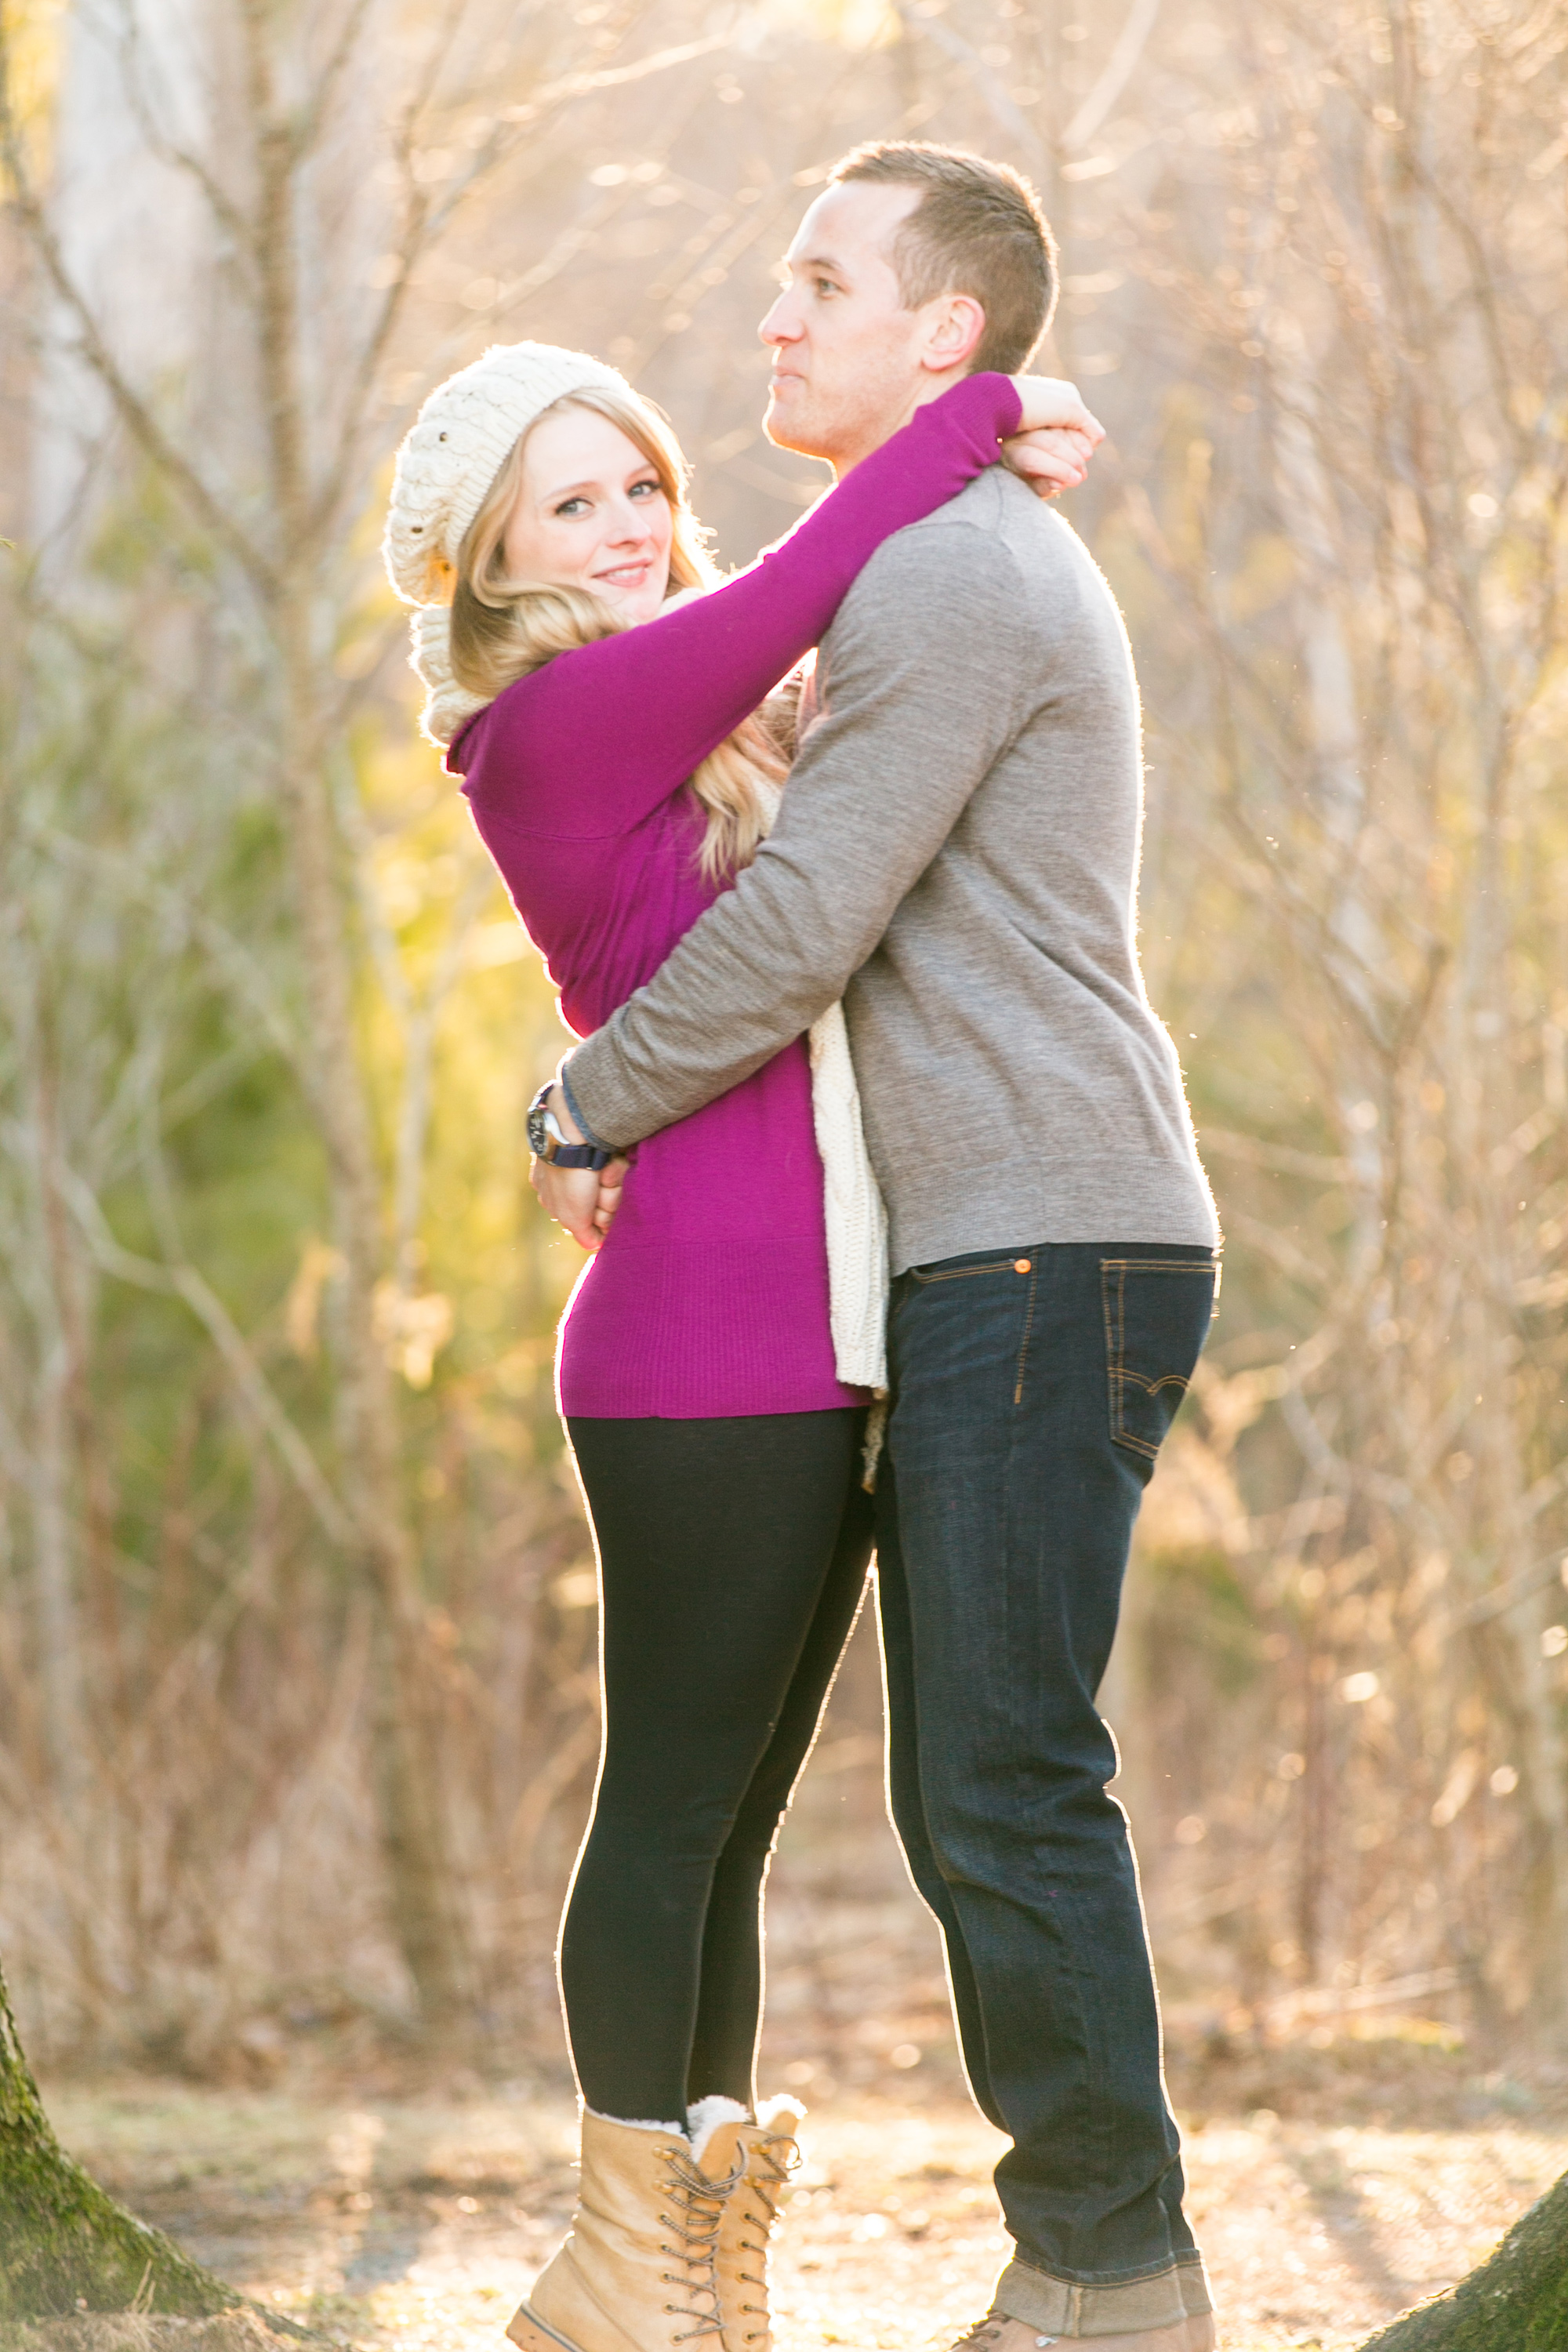 795-halifax-engagement-photography.jpg